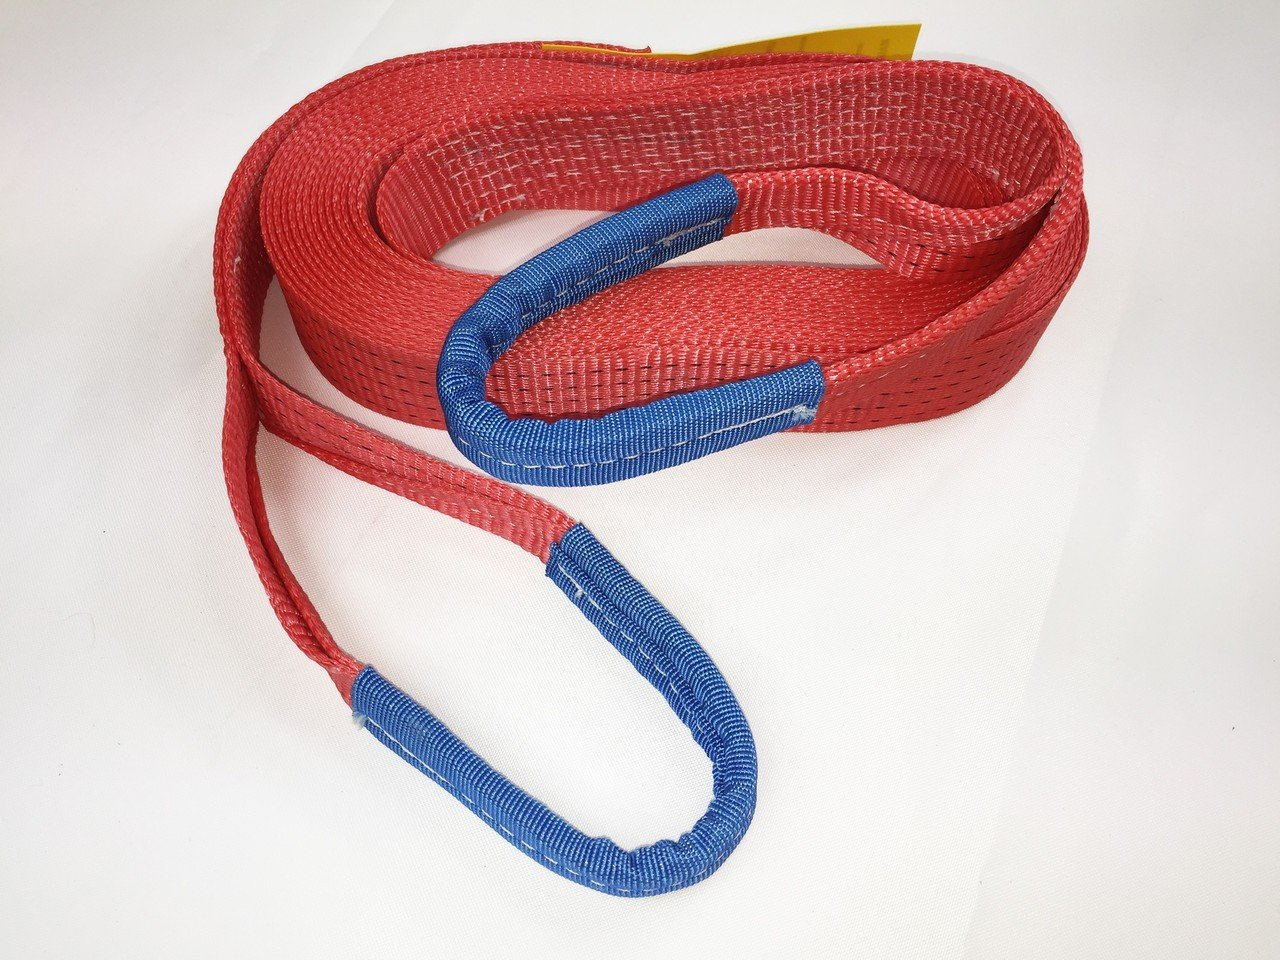 Recovery tow strap 5ton 2mtr Damar Webbing Solutions Ltd